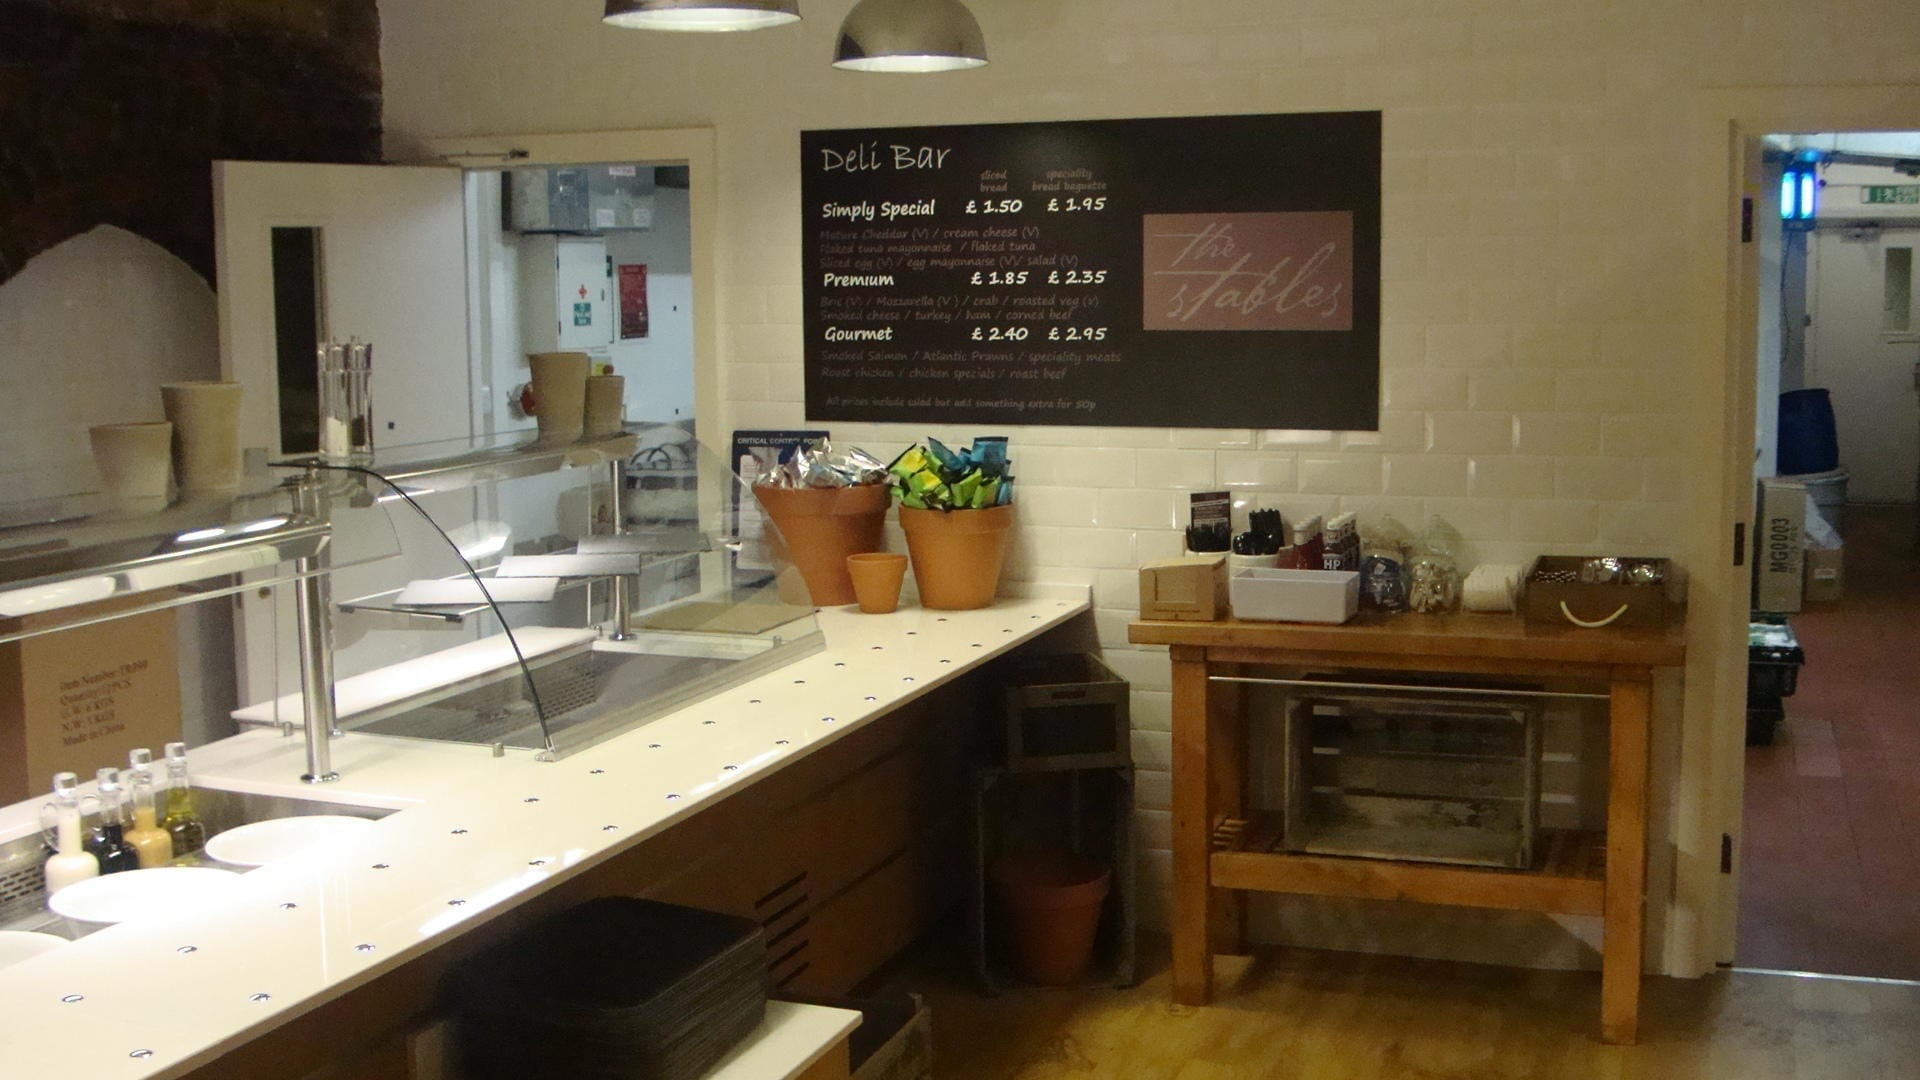 Fullers_Chiswick_Servery_Front_of_house_Servery_Food_Display_spacecatering_1